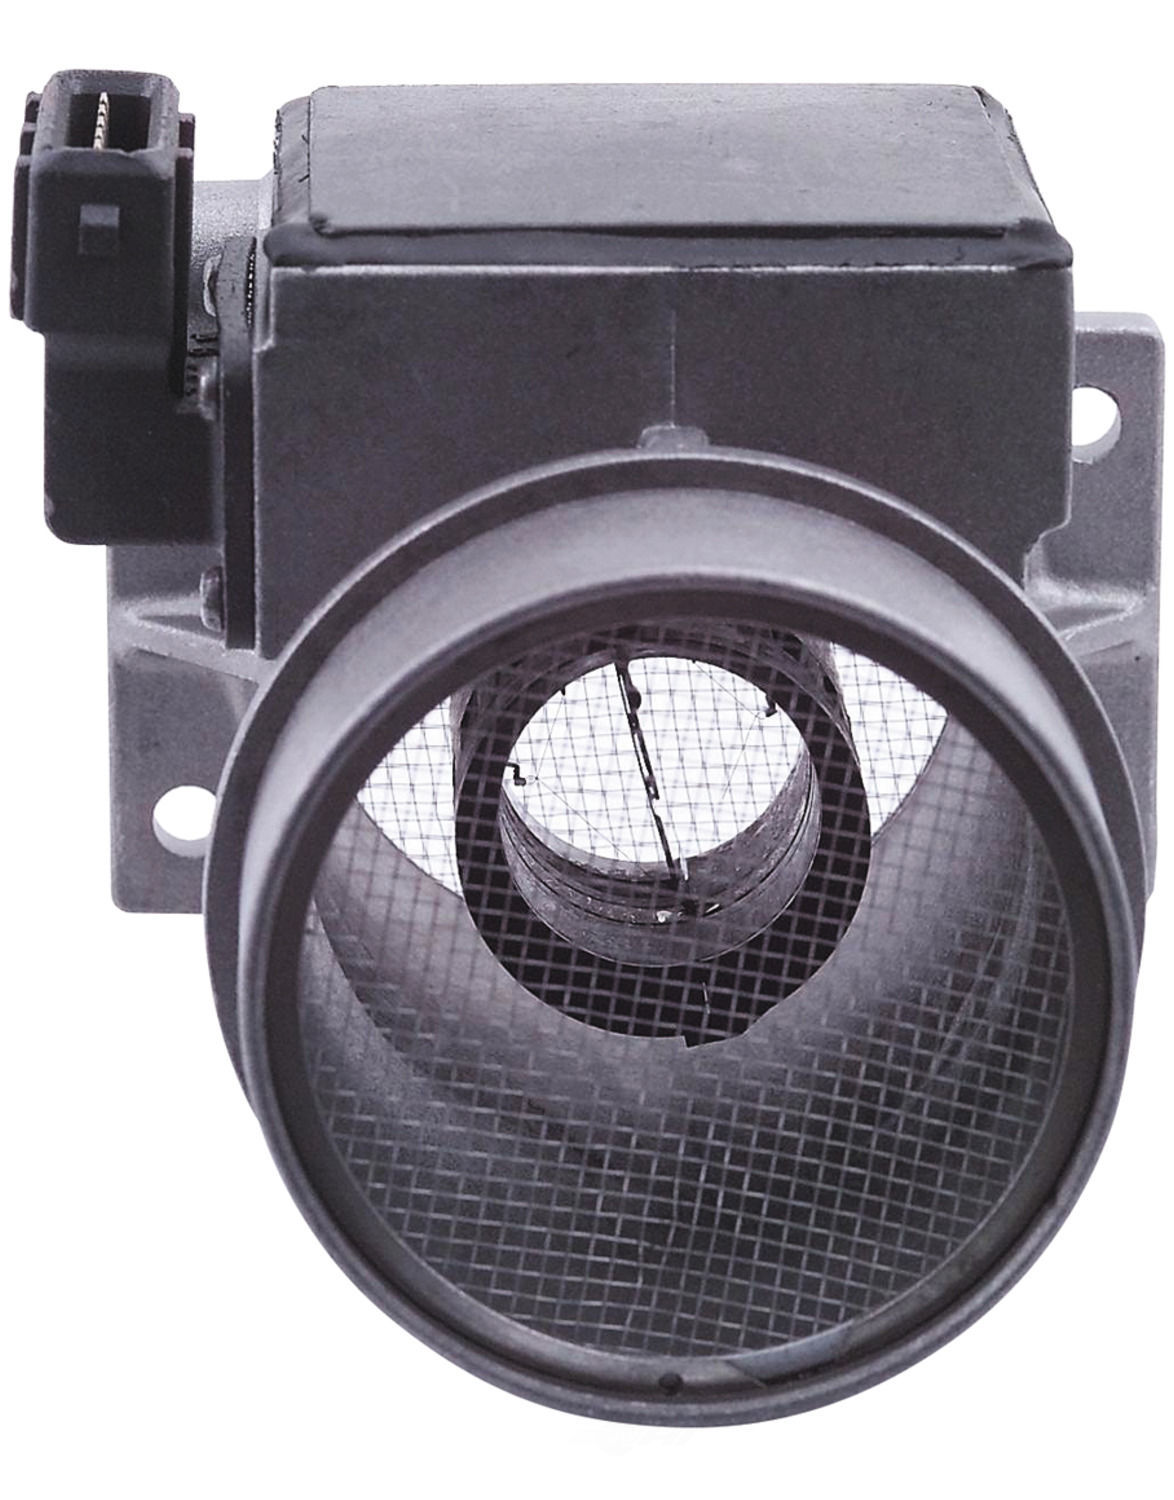 CARDONE REMAN - Mass Air Flow Sensor - A1C 74-10000